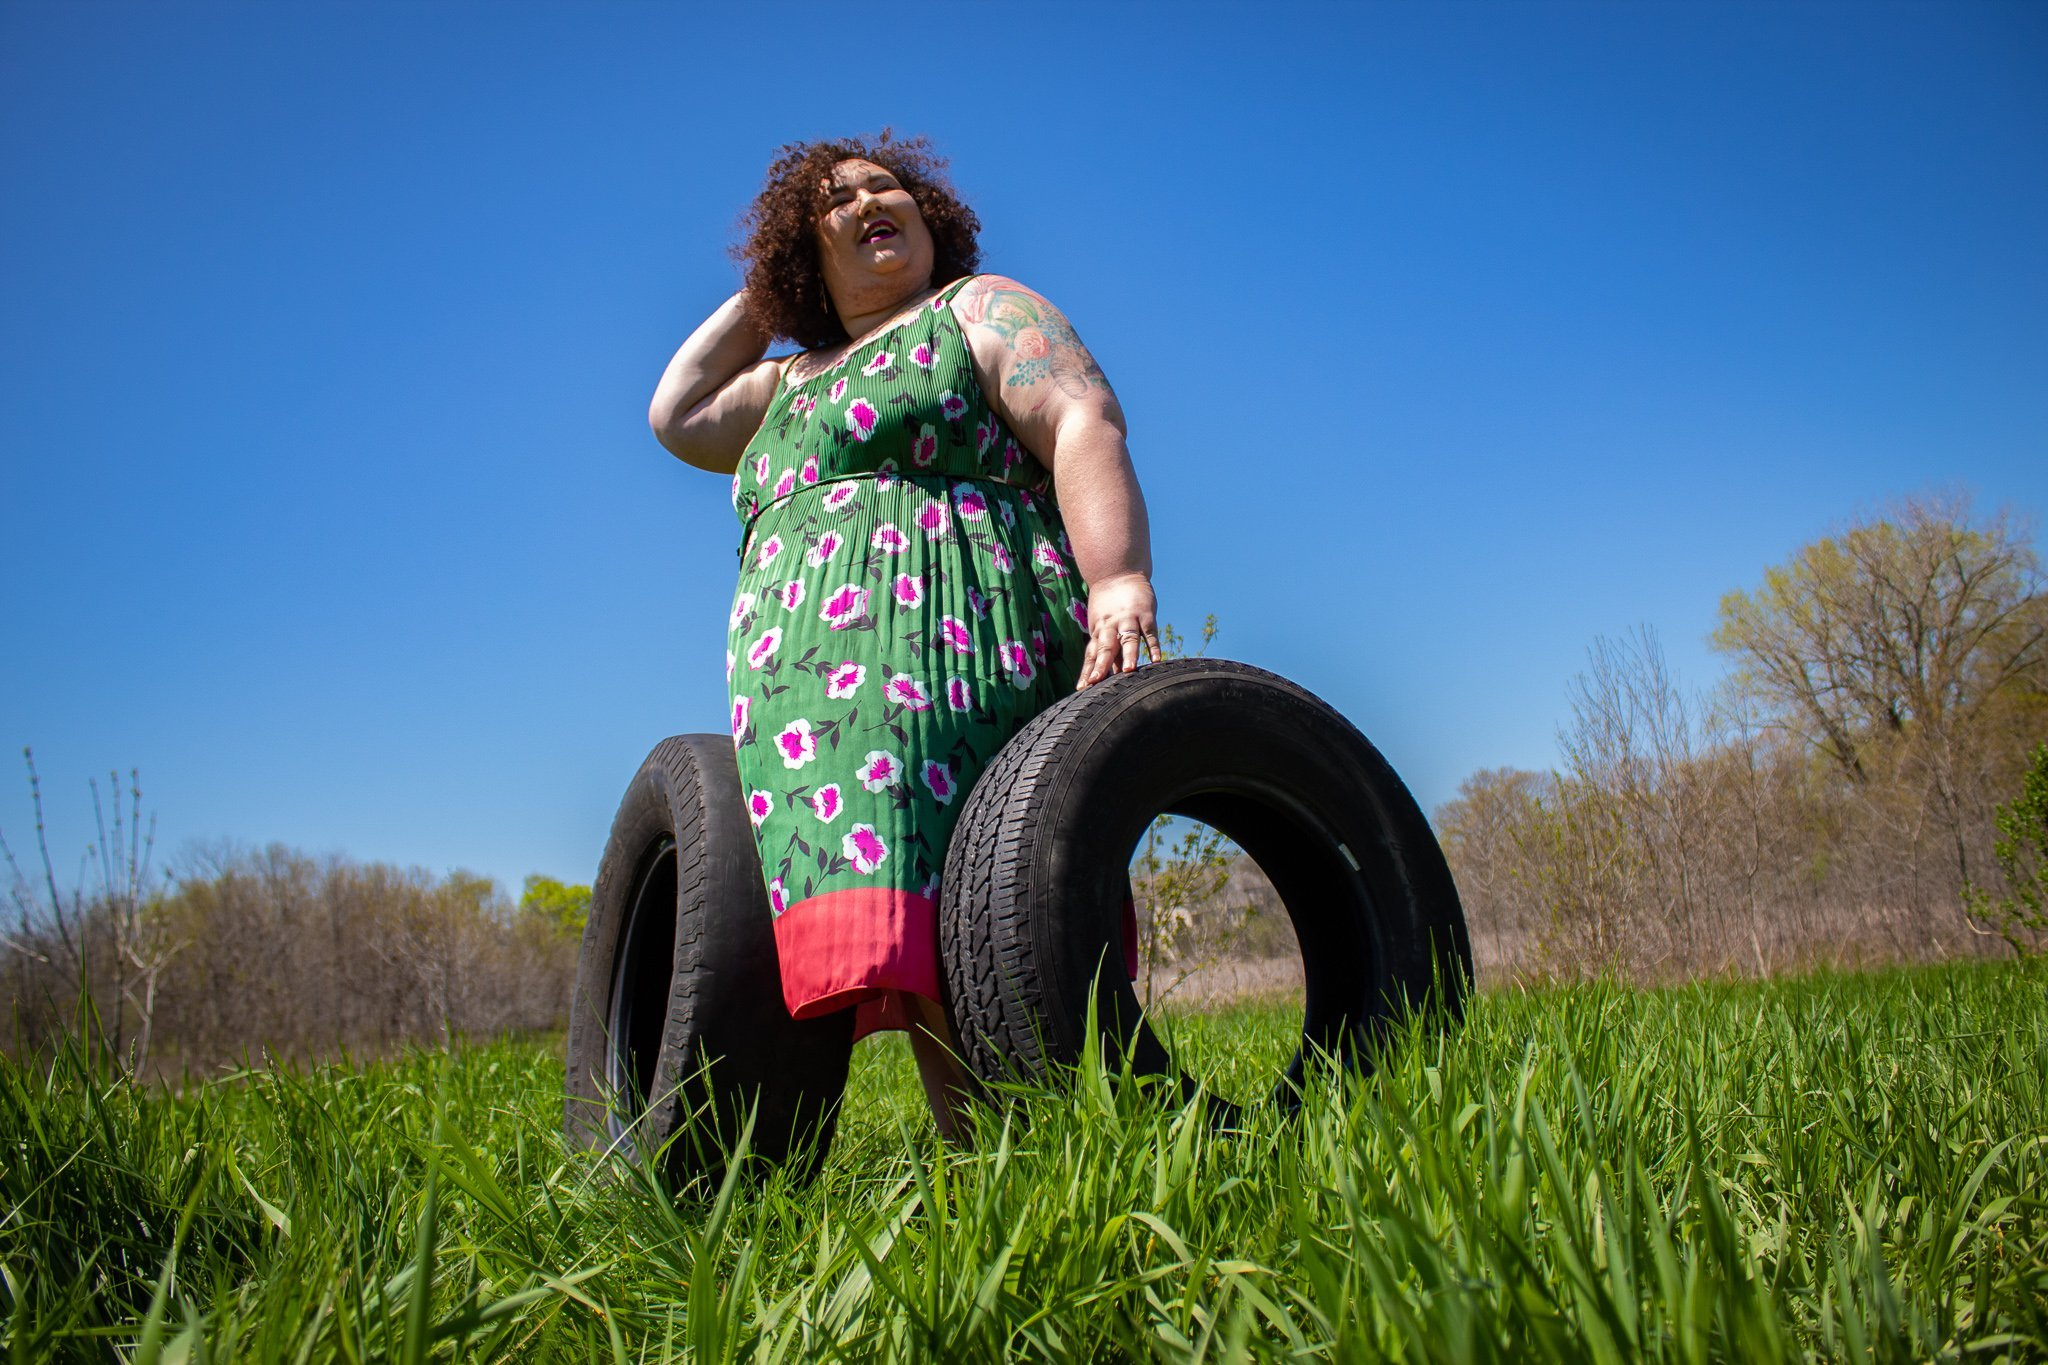 Chaya standing up with two tires leaning against her